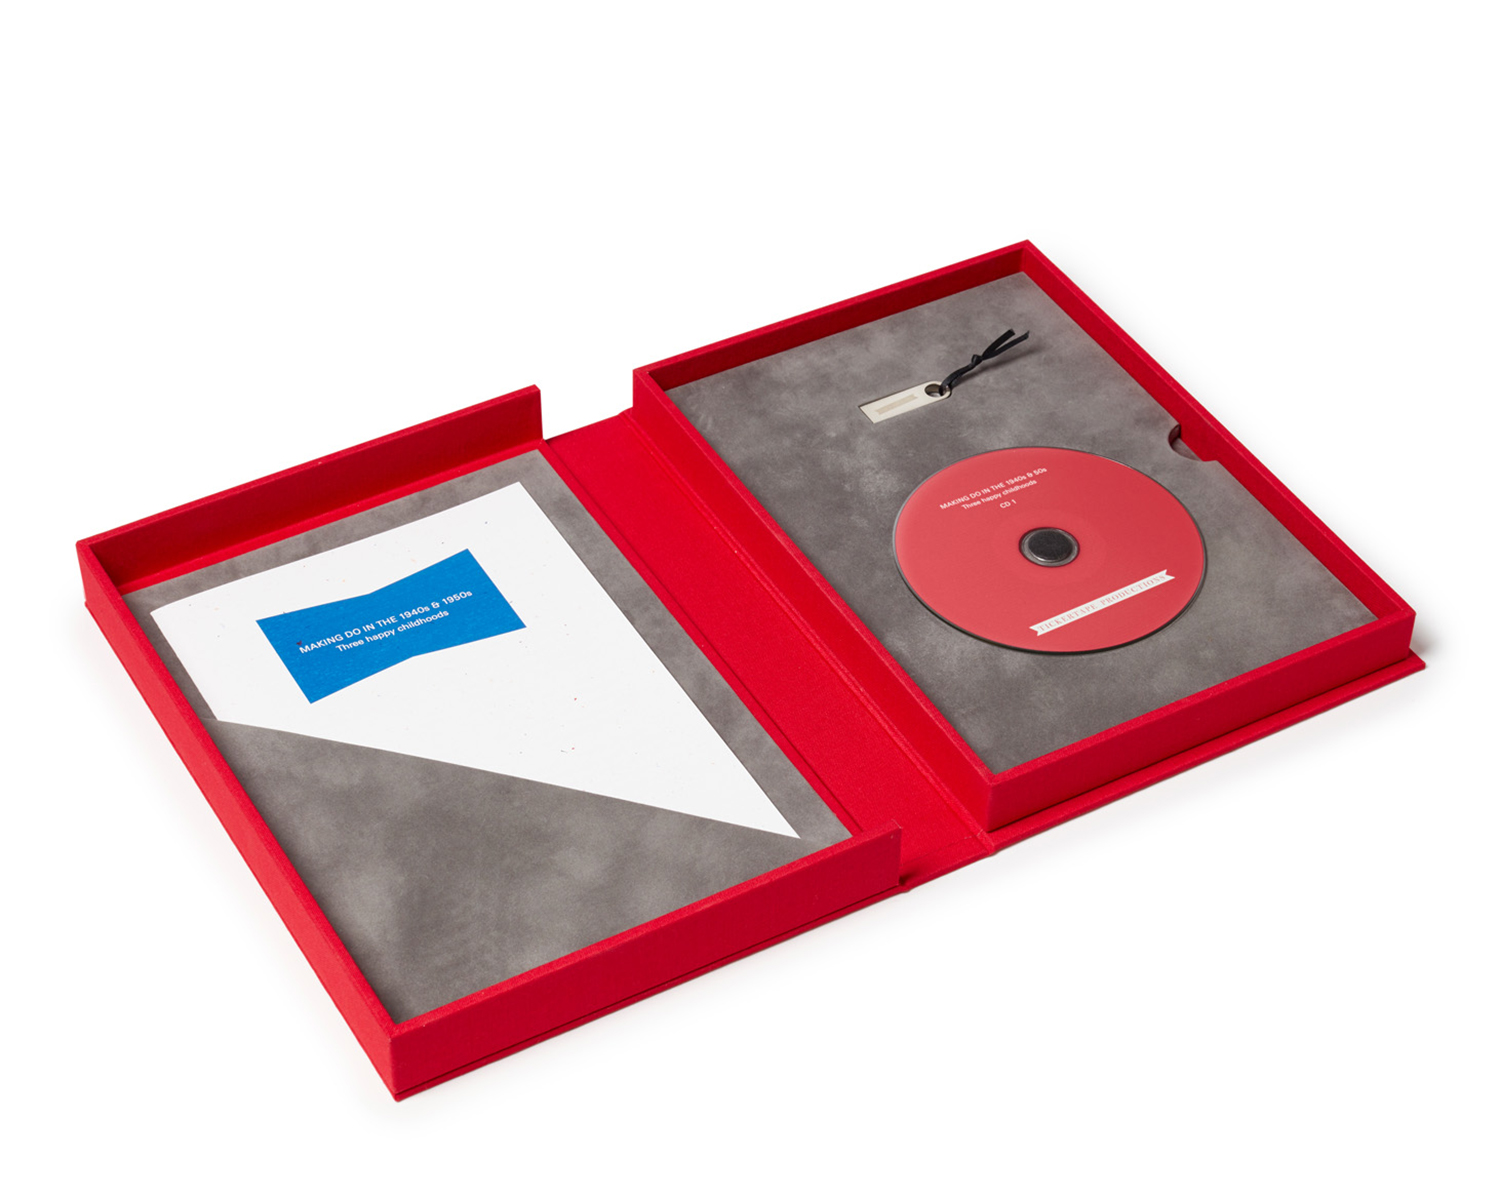 Suedette-lined interior of a Spoken Portrait presentation box: audio CD, USB stick and paper insert with a summary of contents